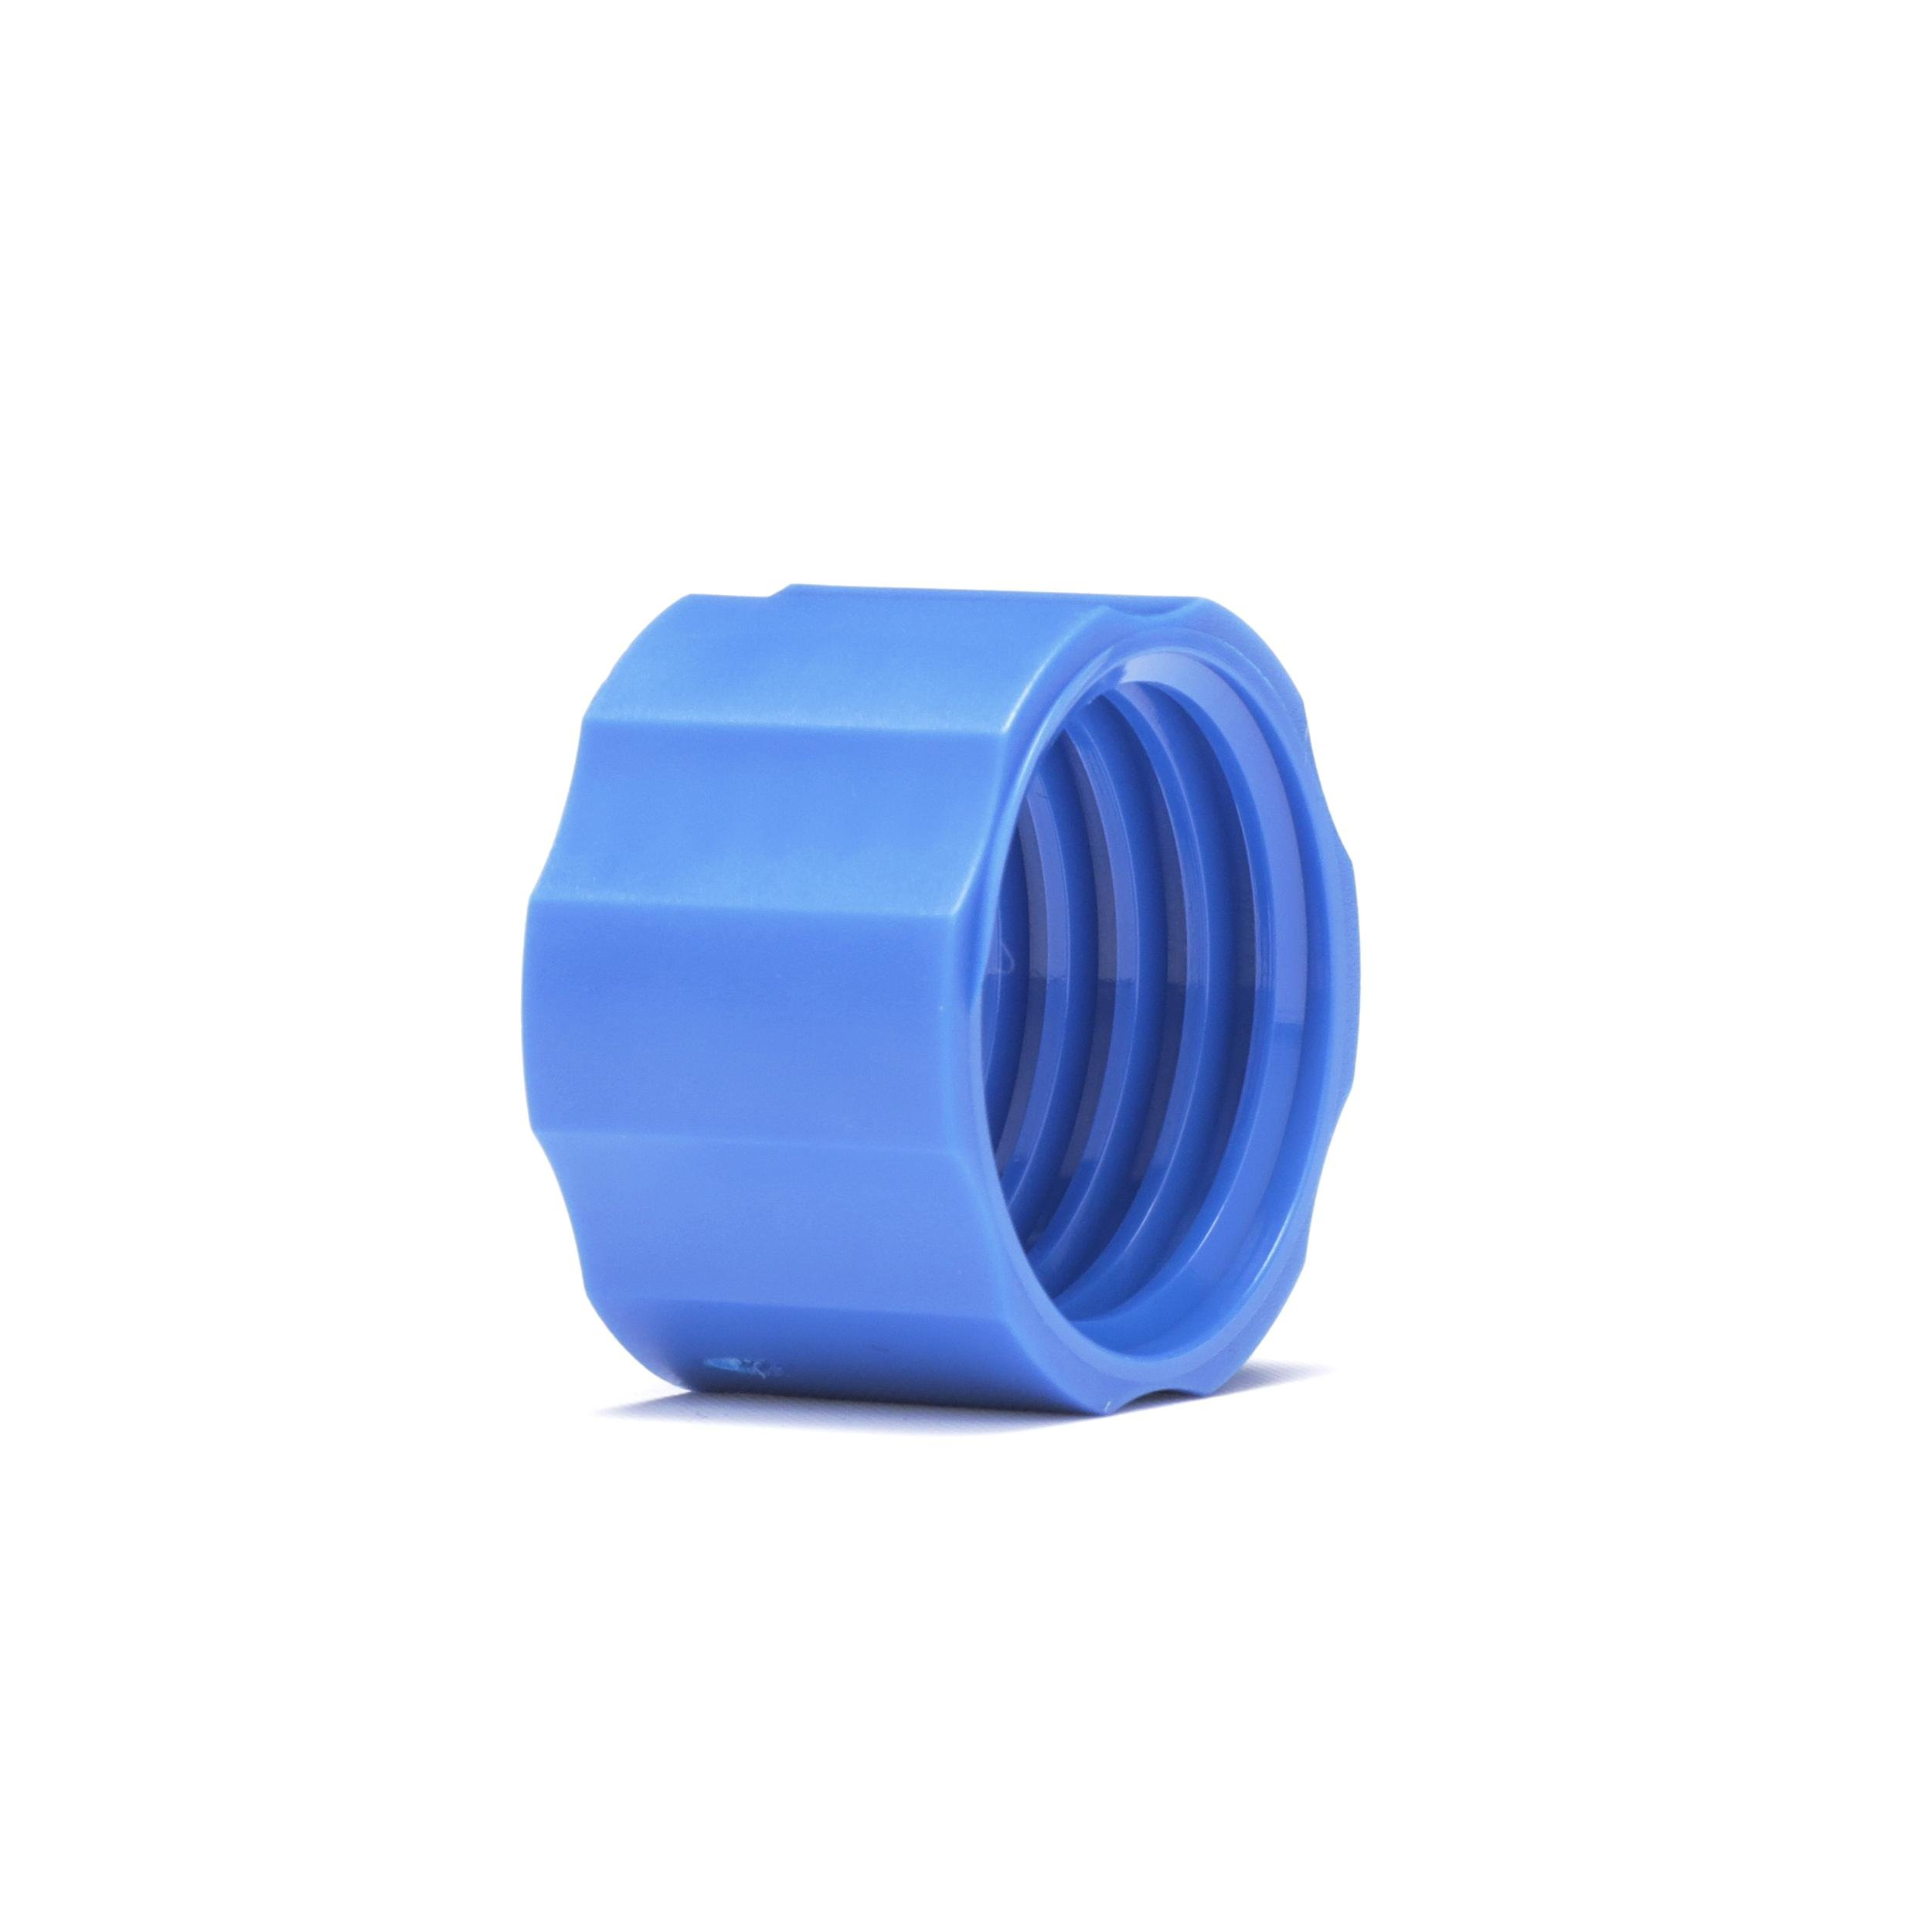 Sawyer Products SP150 Coupling for Water Filtration Cleaning by Sawyer Products (Image #1)